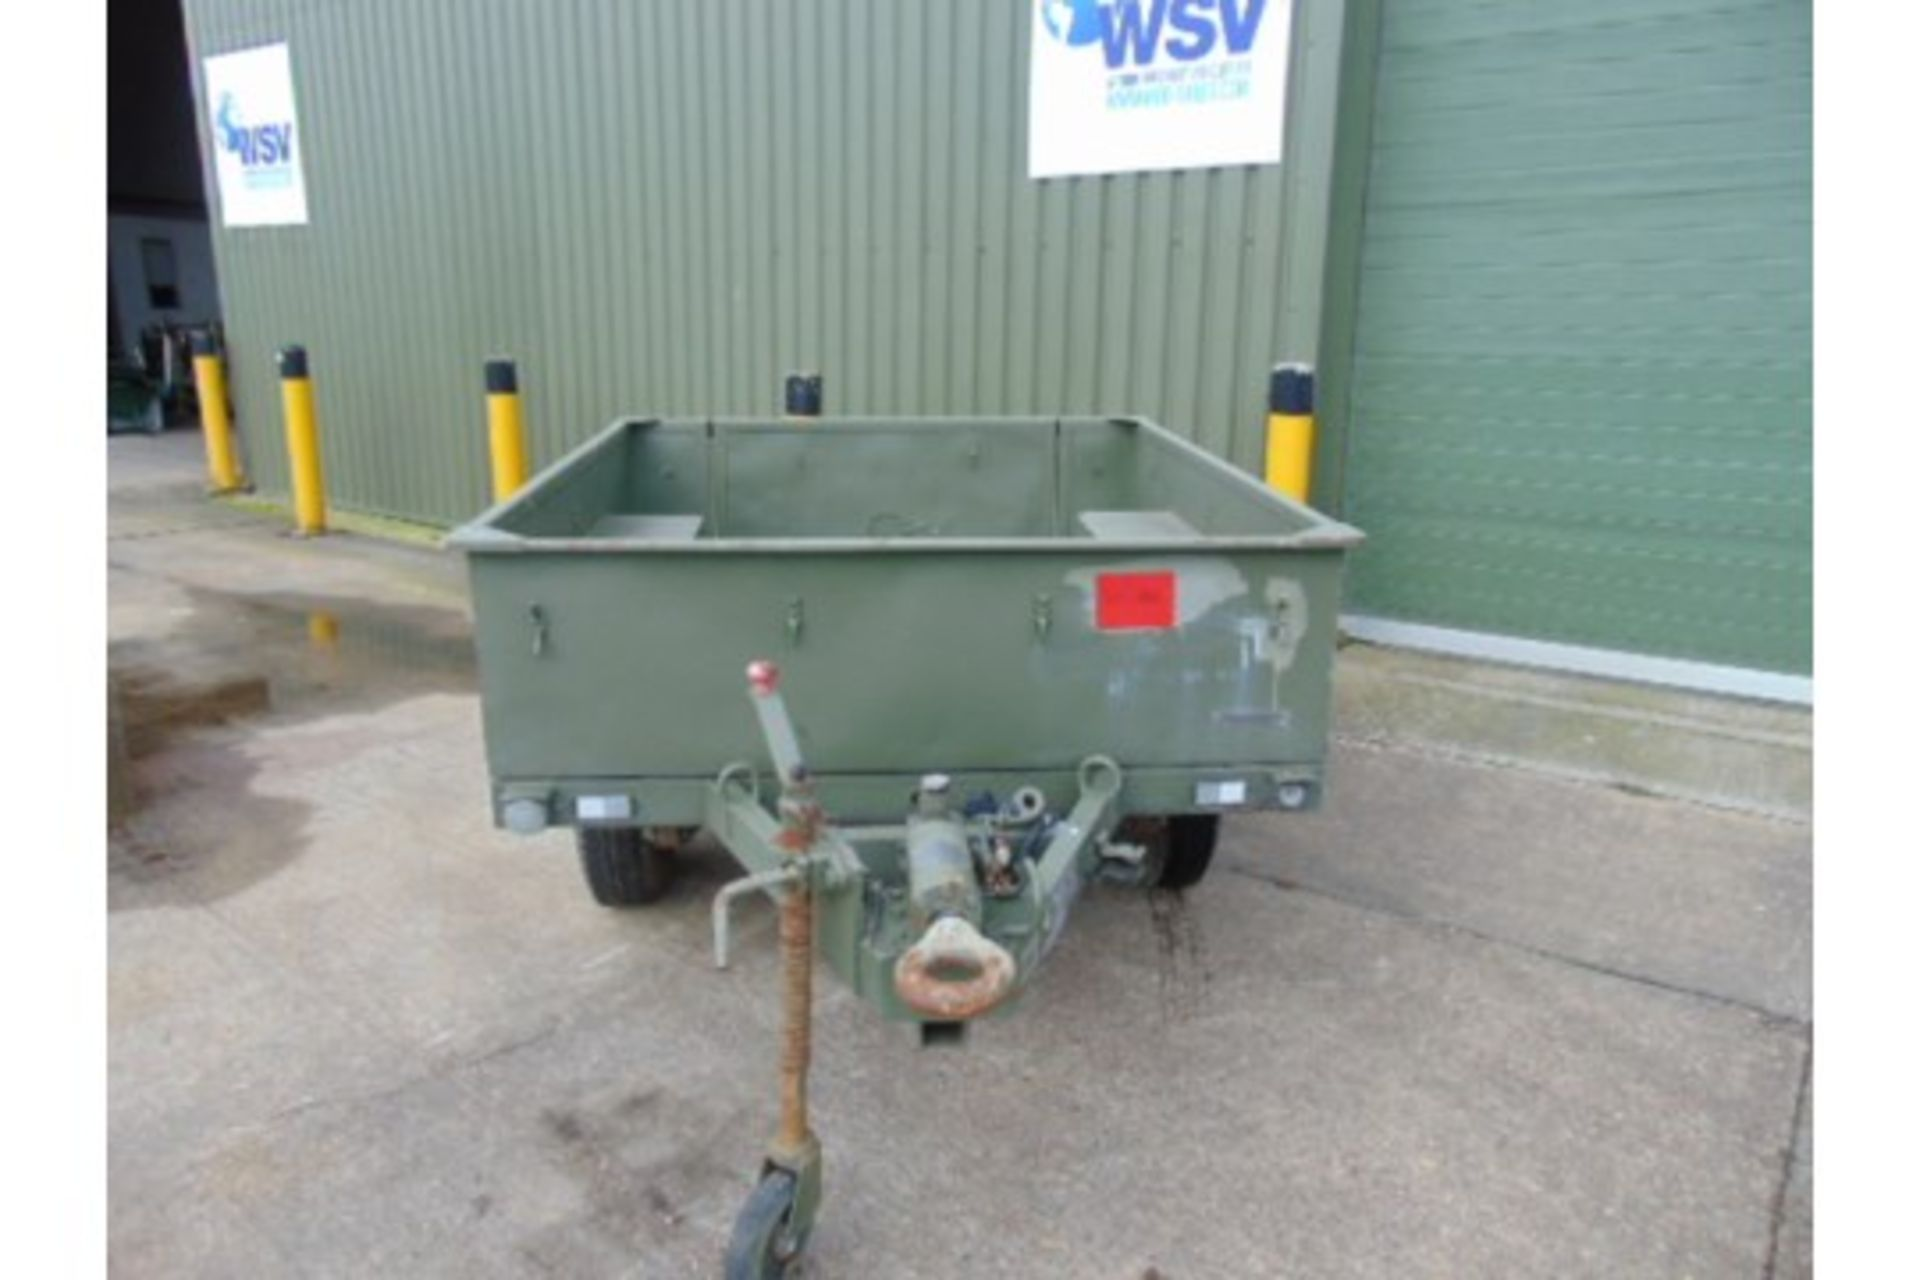 Lot 26597 - Sankey 3/4 ton widetrack trailer with dropdown tailgate, military lighting and tow ring, drum brakes